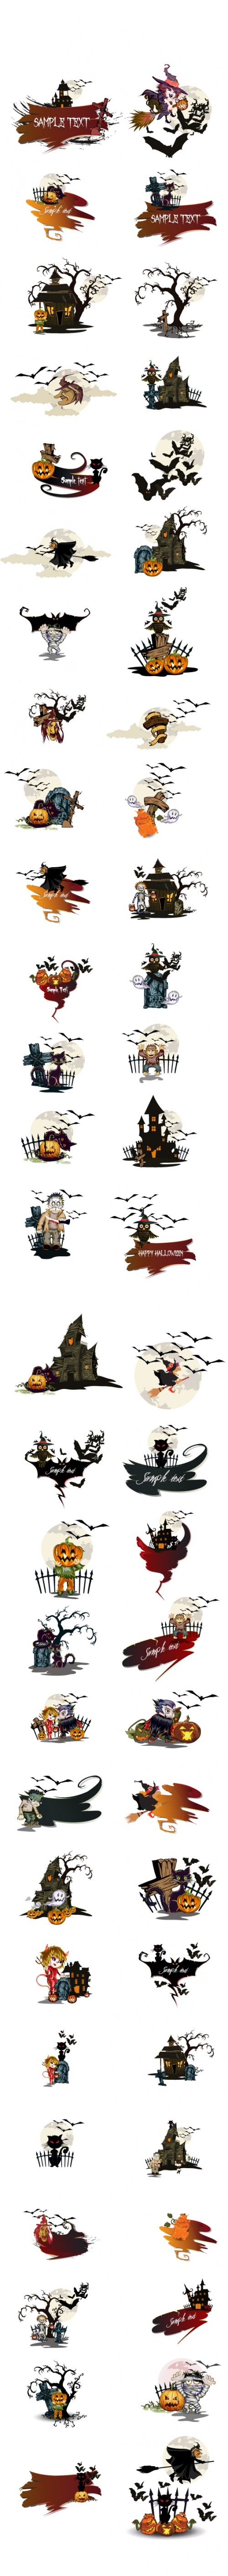 Designtnt - Halloween Vector Elements